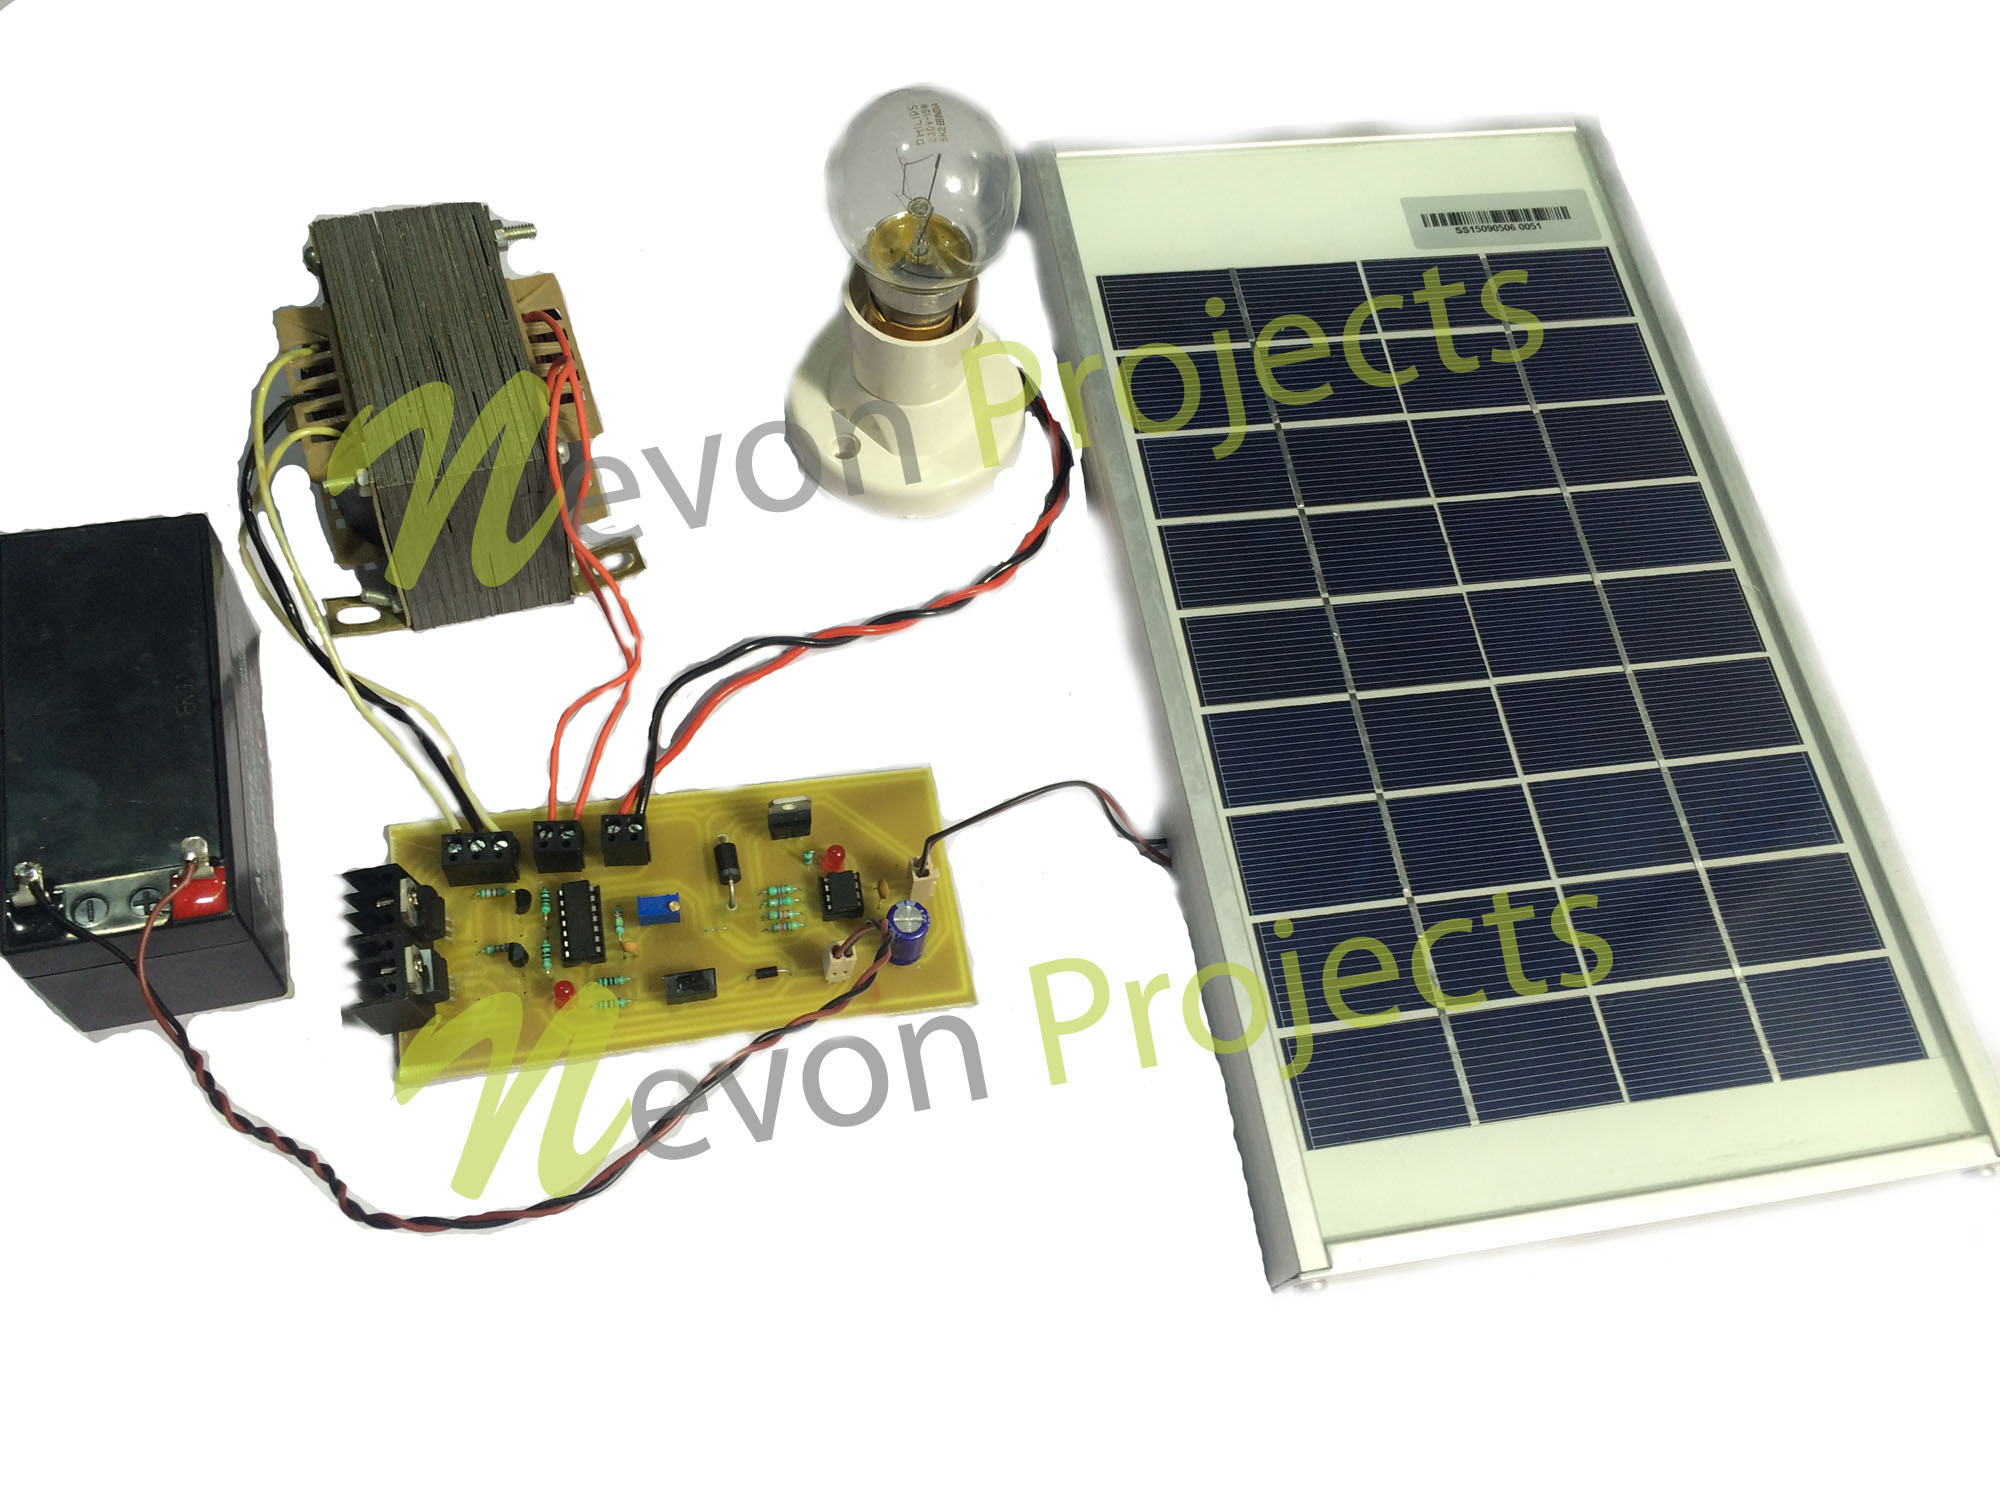 Solar Based UPS Project | NevonProjects